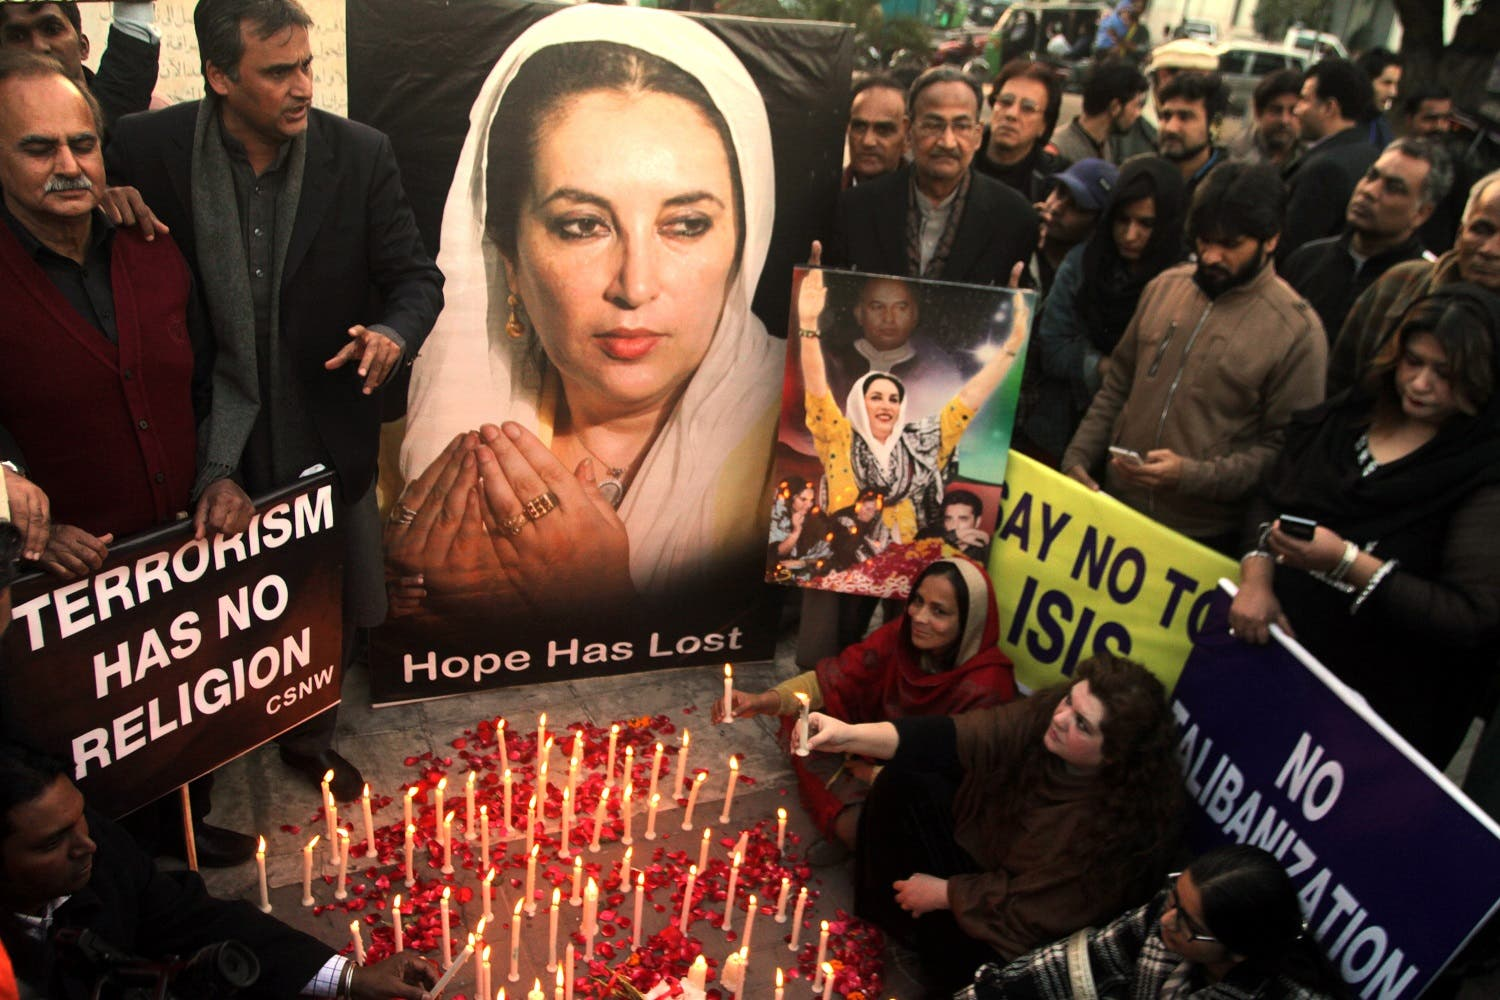 Supporters of Pakistan's slain leader Benazir Bhutto take part in a memorial in Lahore, Pakistan. (AP)